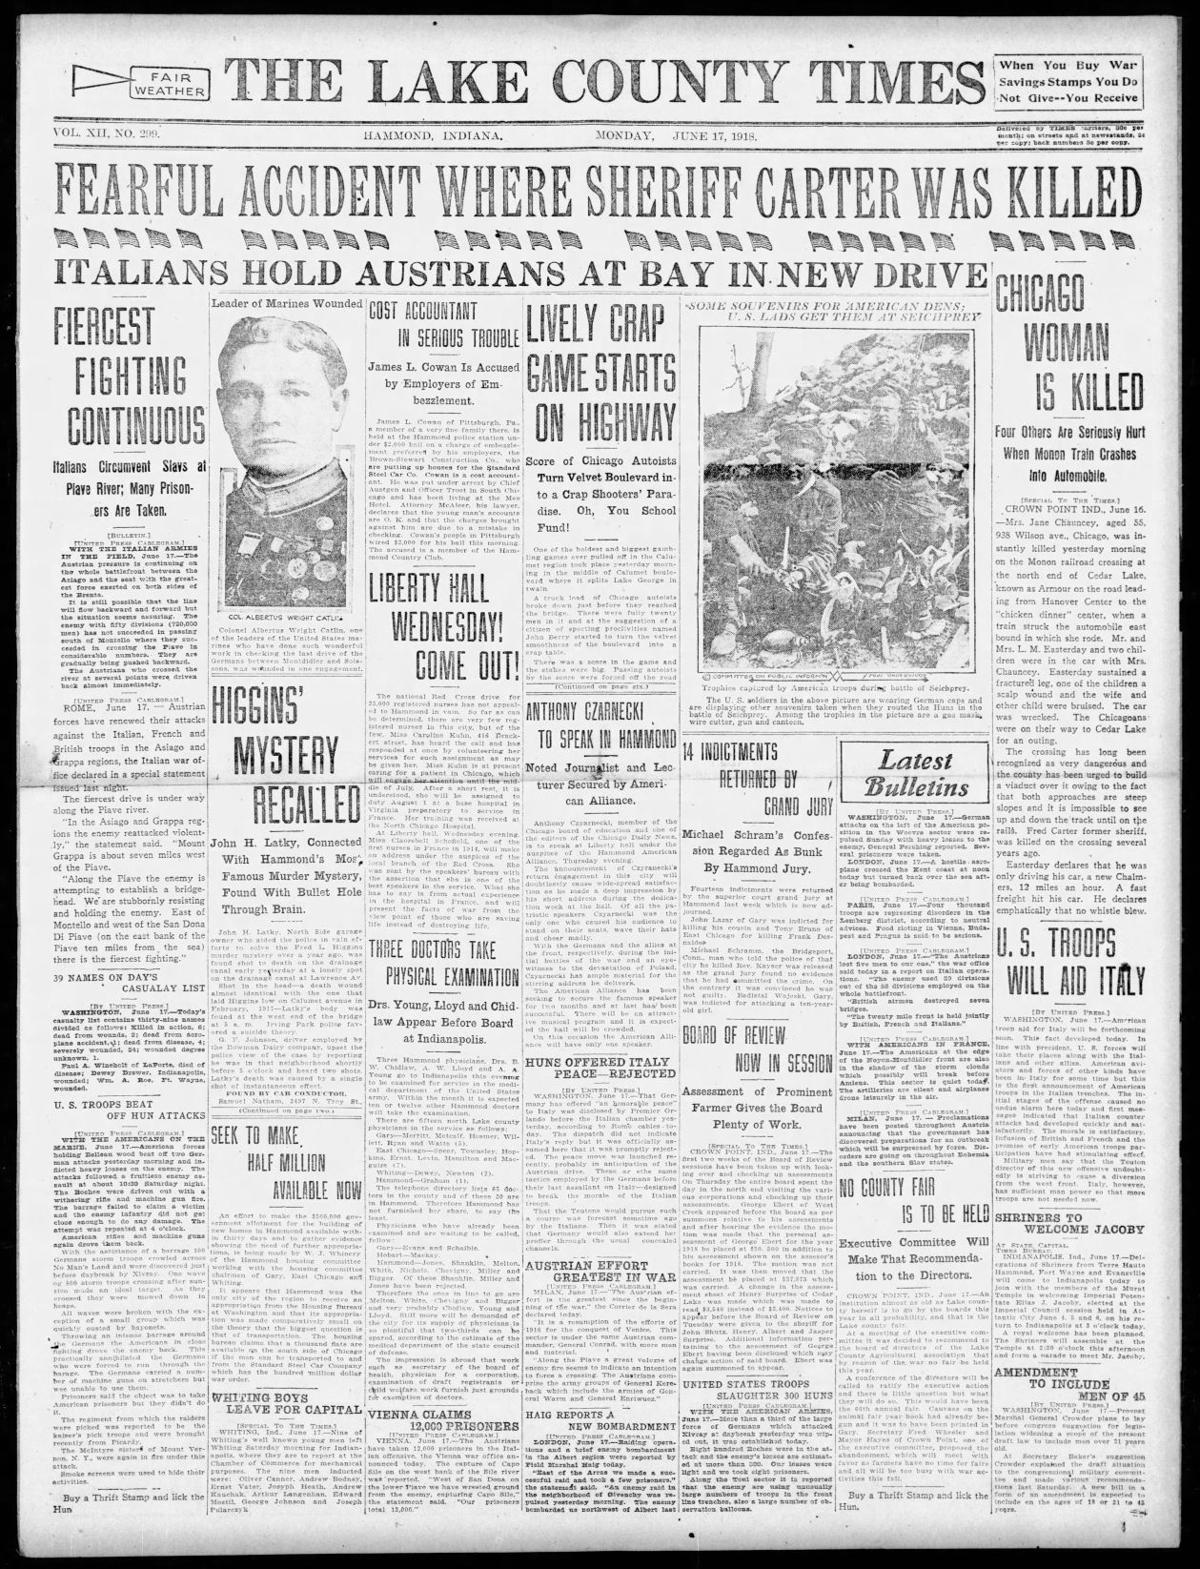 June 17, 1918: Fearful Accident Where Sheriff Carter Was Killed